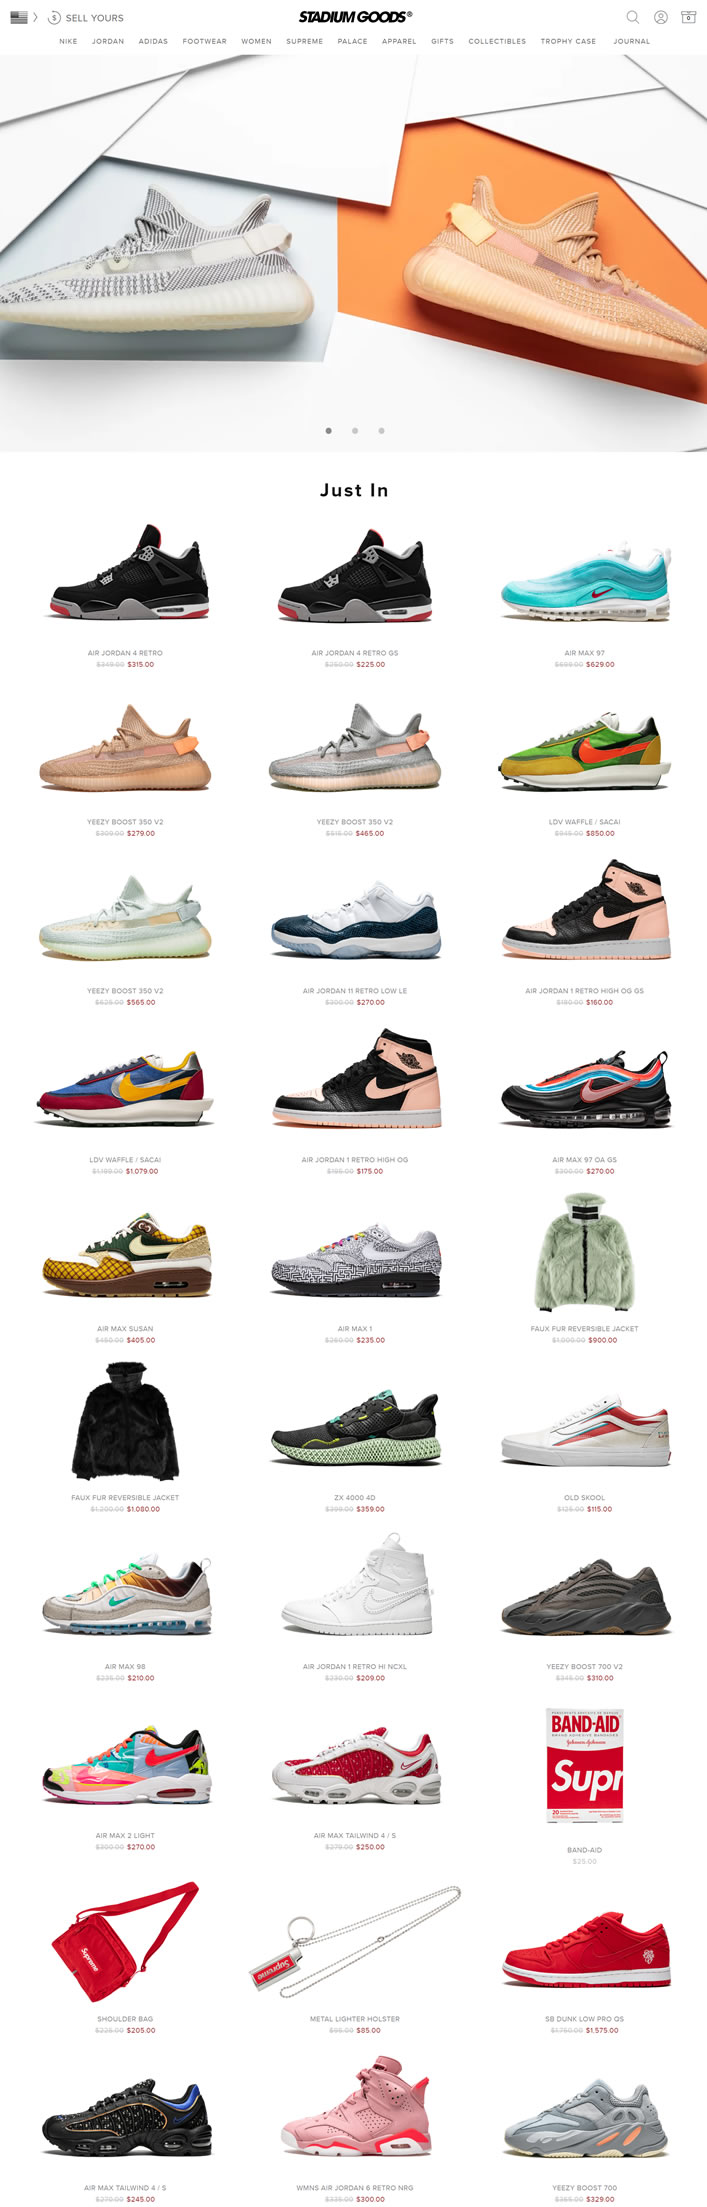 Stadium Goods Official Site: Air Jordan, Nike, adidas, Supreme & Other Footwear Available